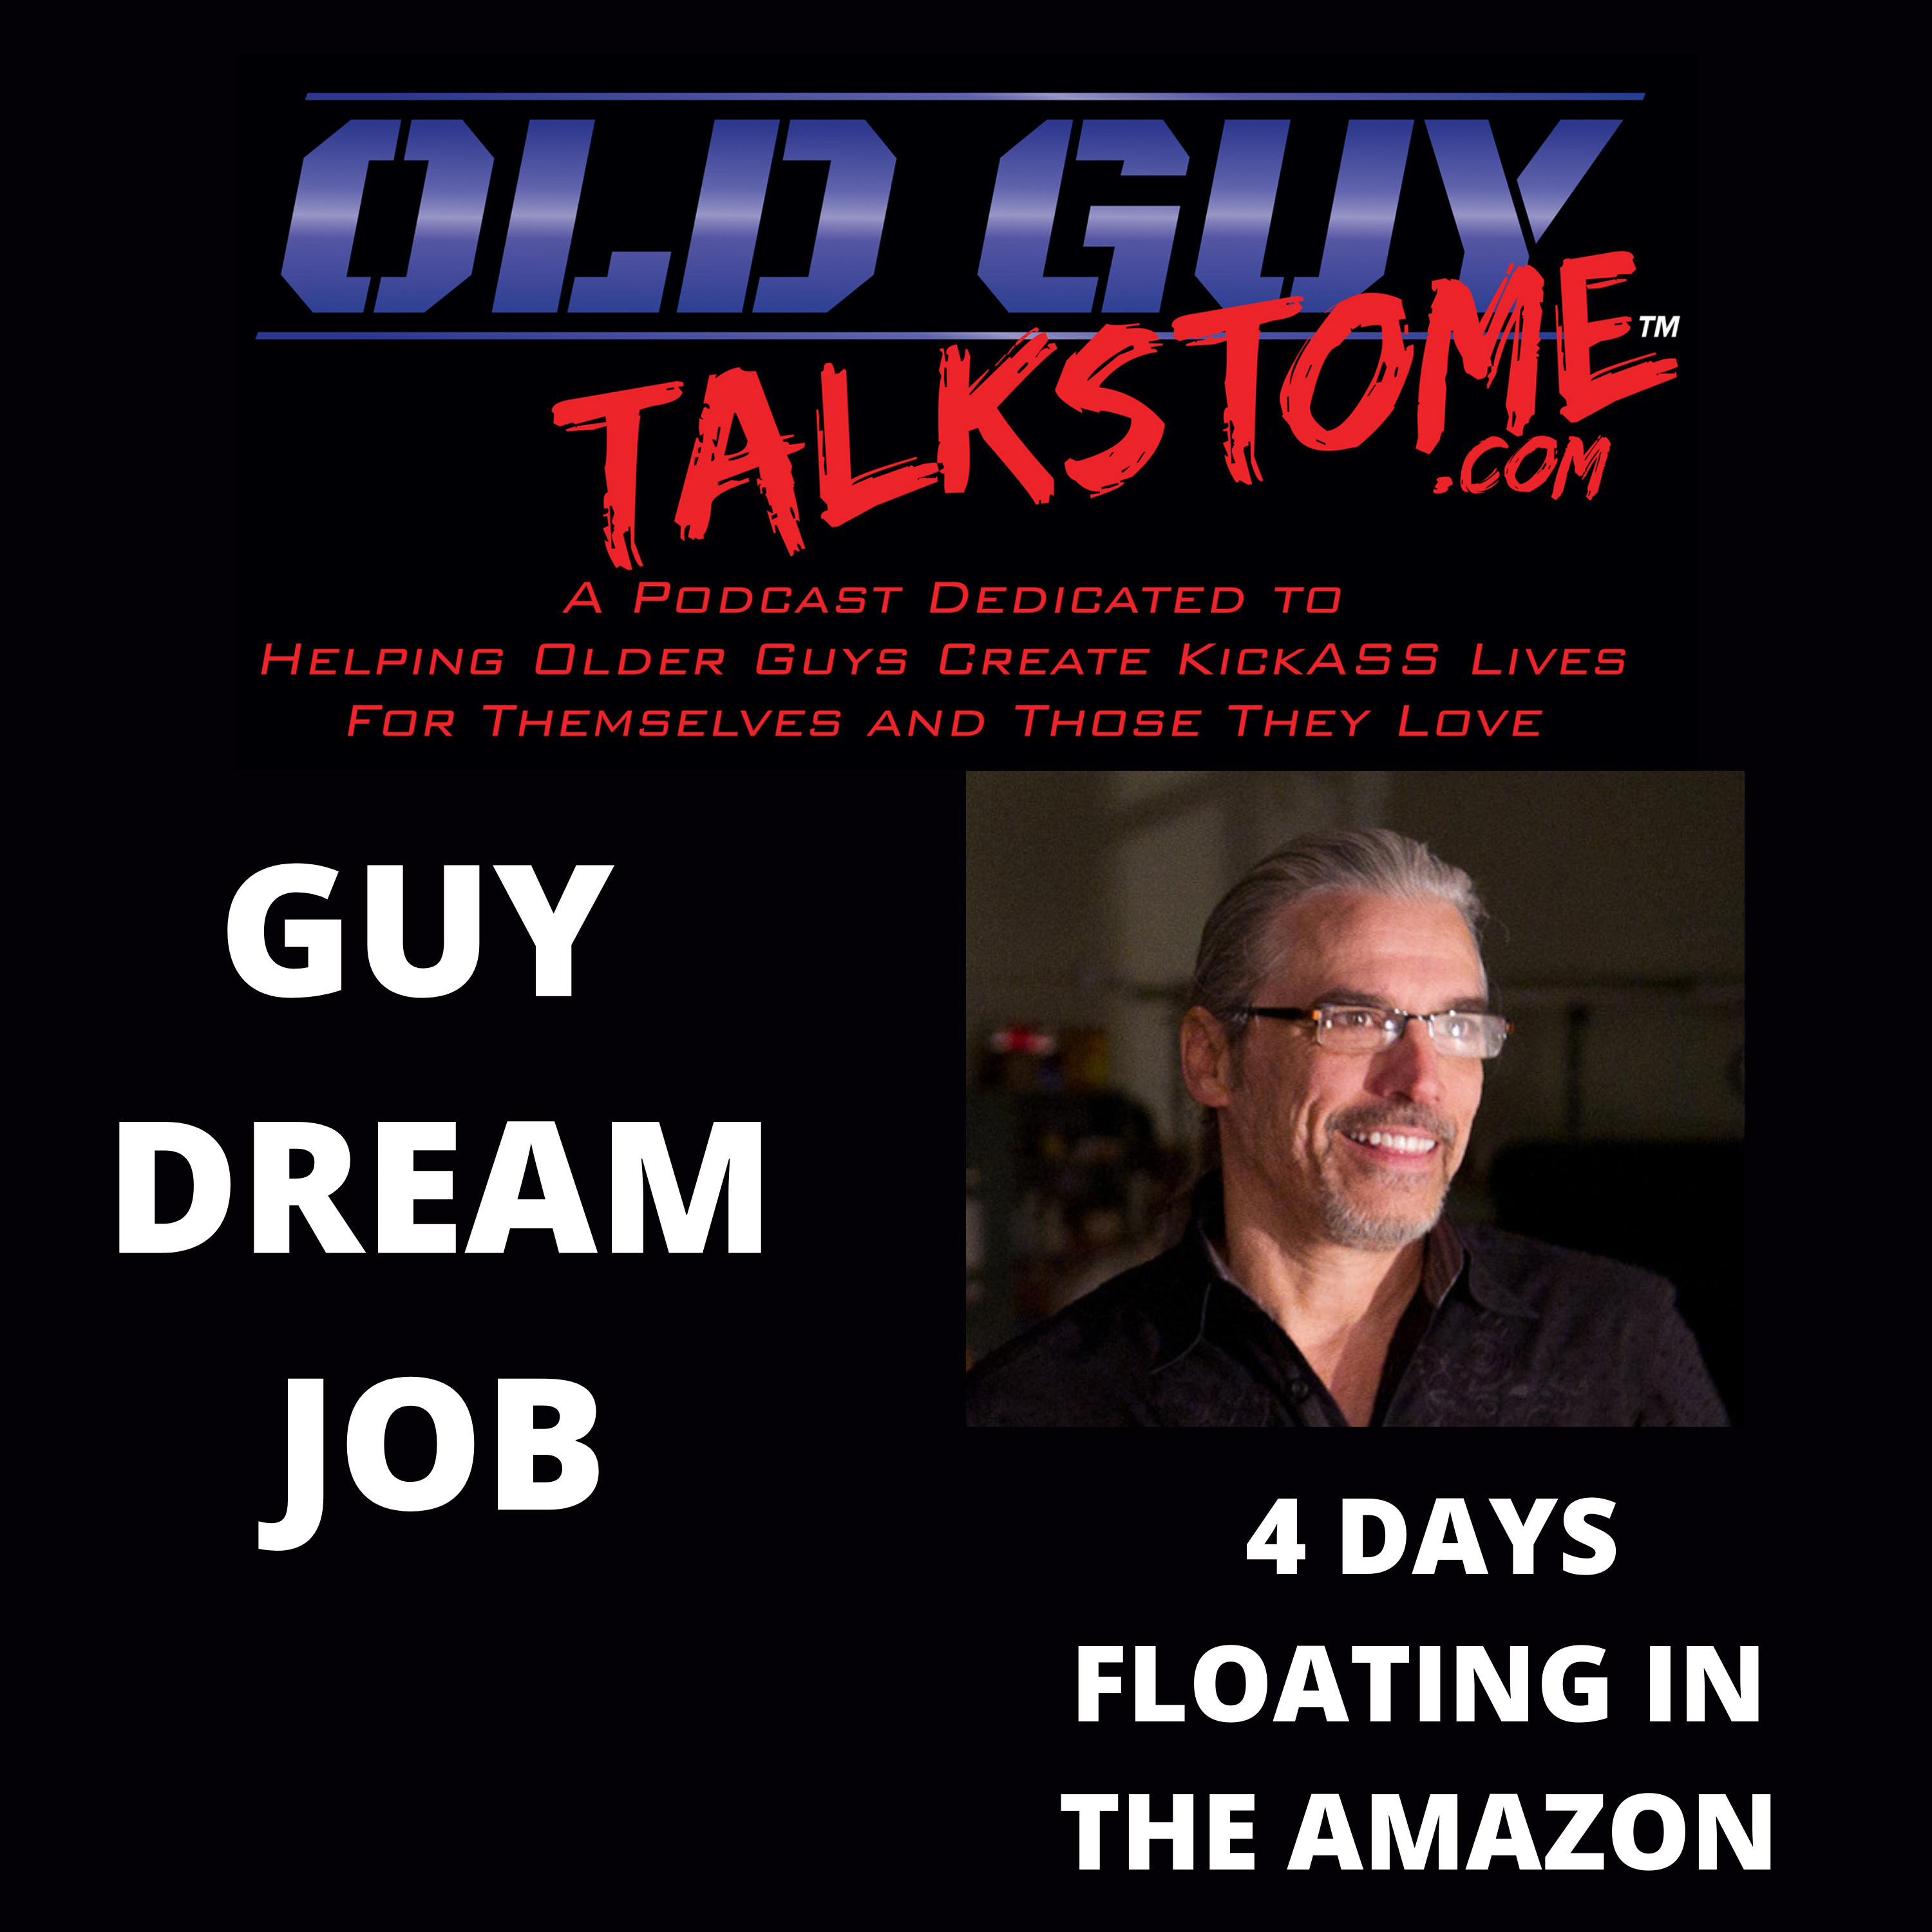 OldGuyTalksToMe - GUY DREAM JOB: 4 DAYS FLOATING IN THE AMAZON